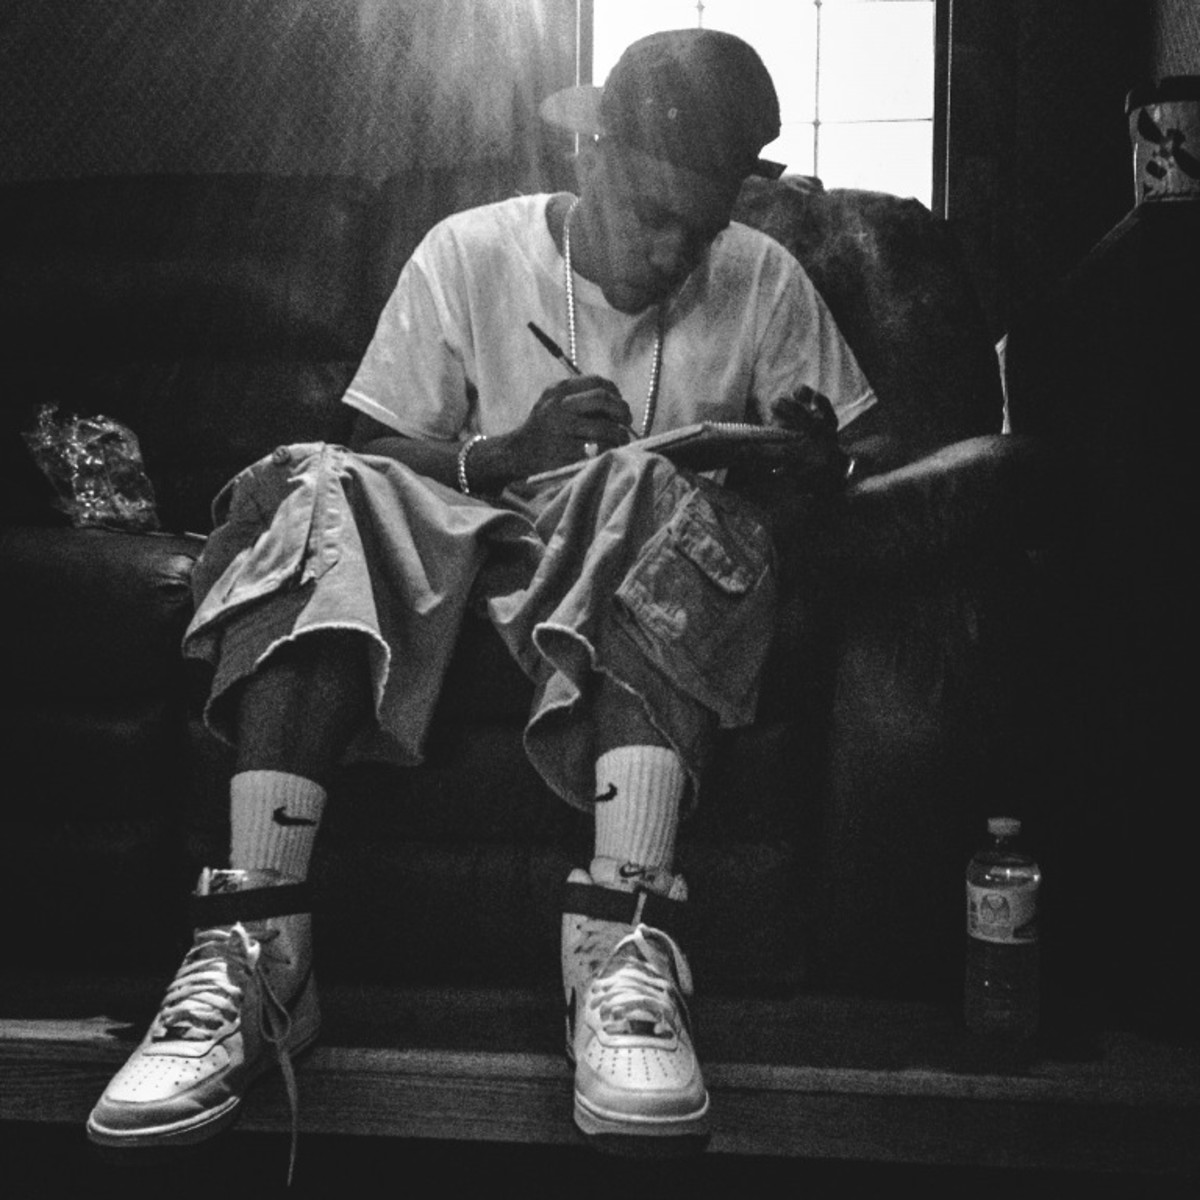 Currensy, Closed Sessions, Chicago record label